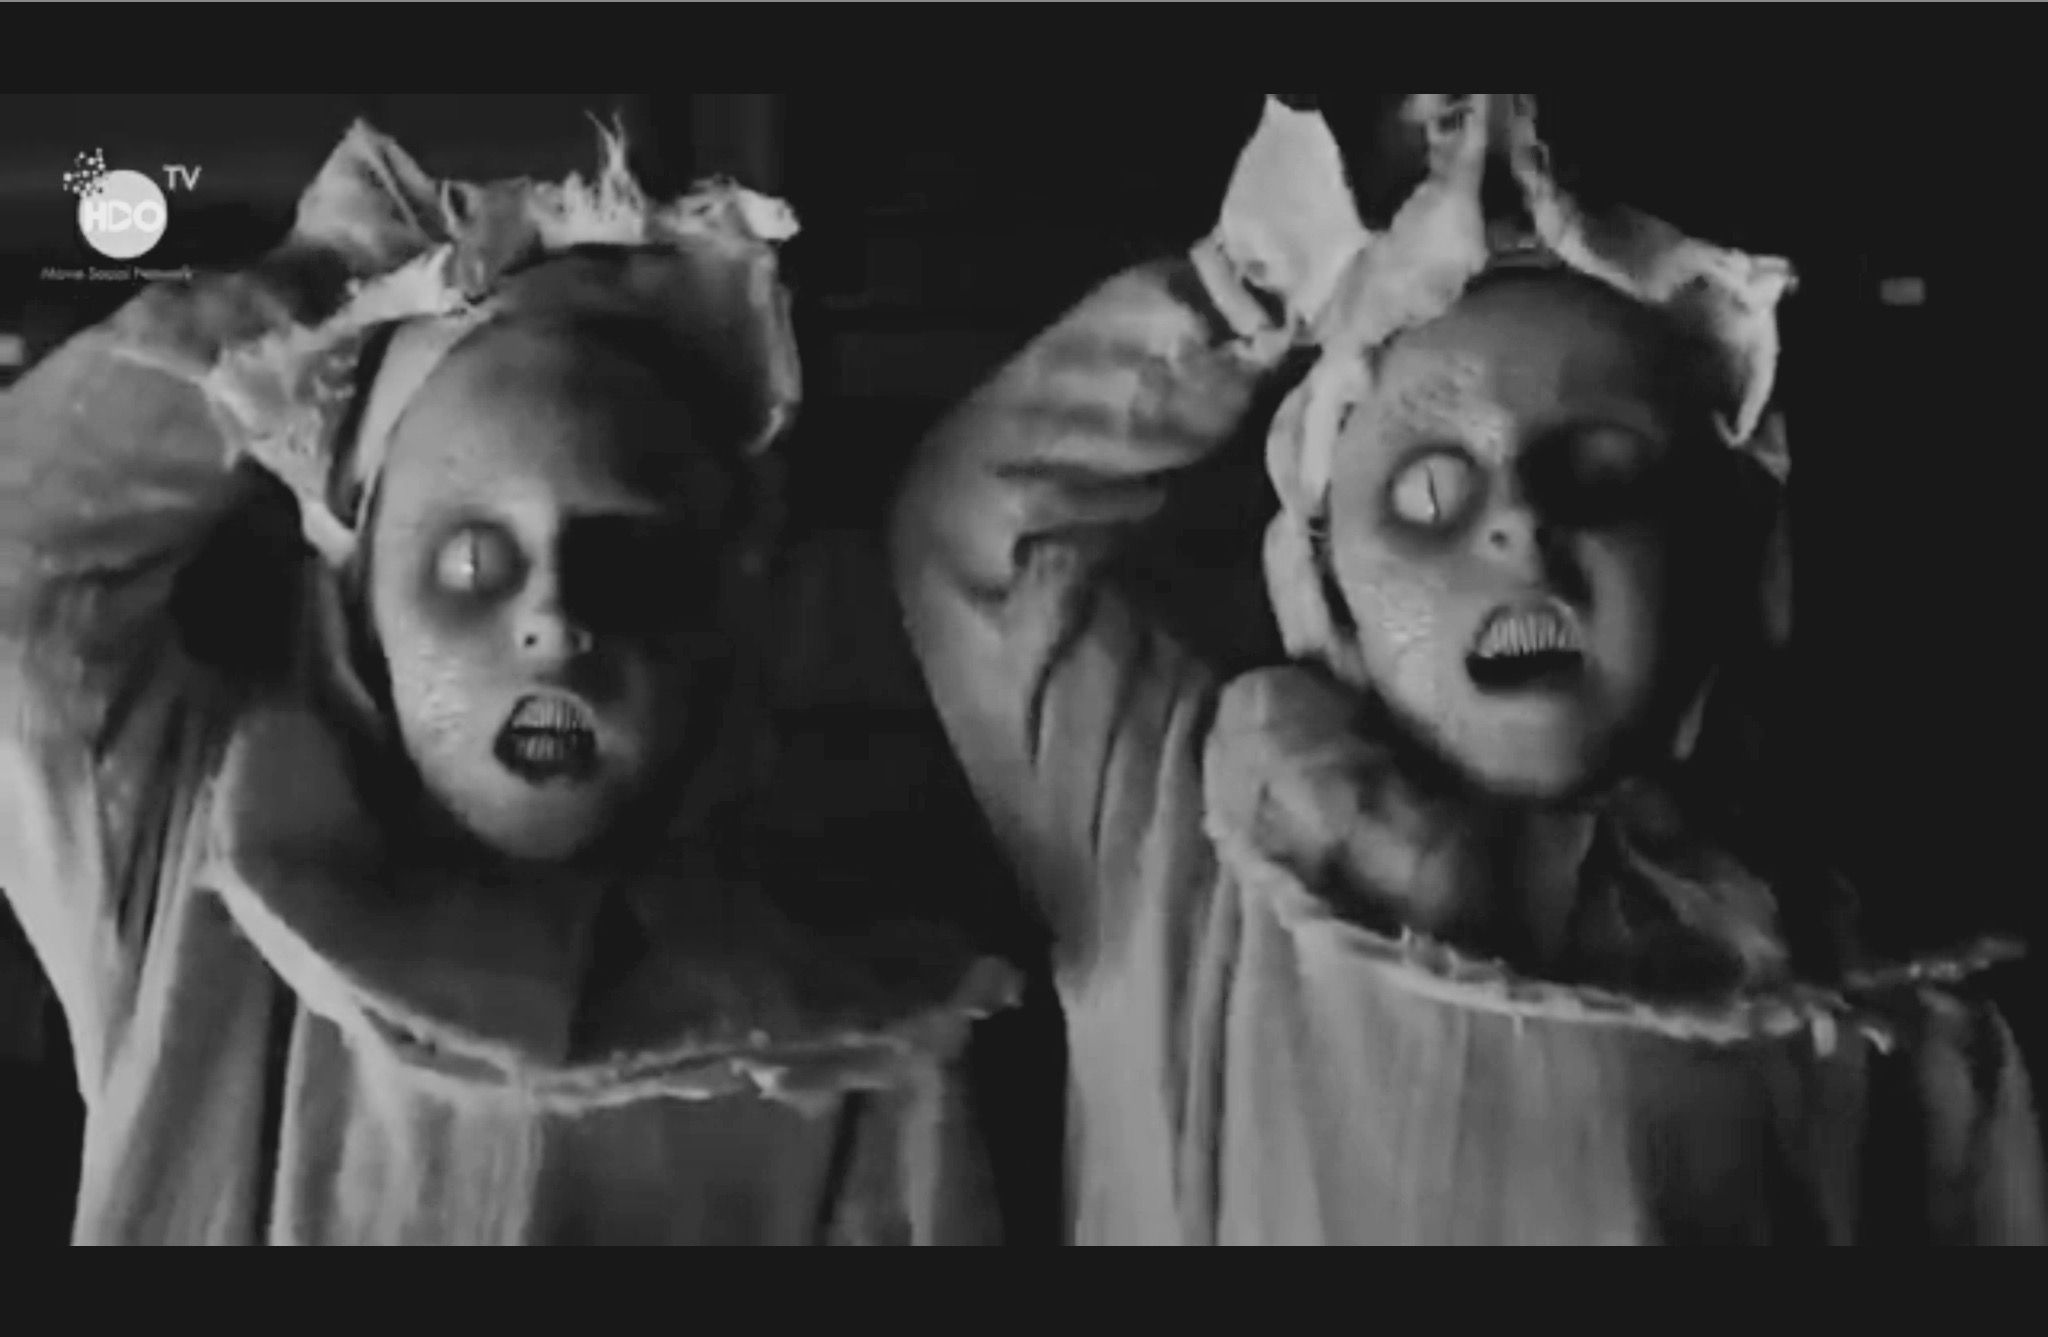 The Twins Faces Miss Peregrines Home For Peculiar Miss Peregrine S Peculiar Children Peculiar Children